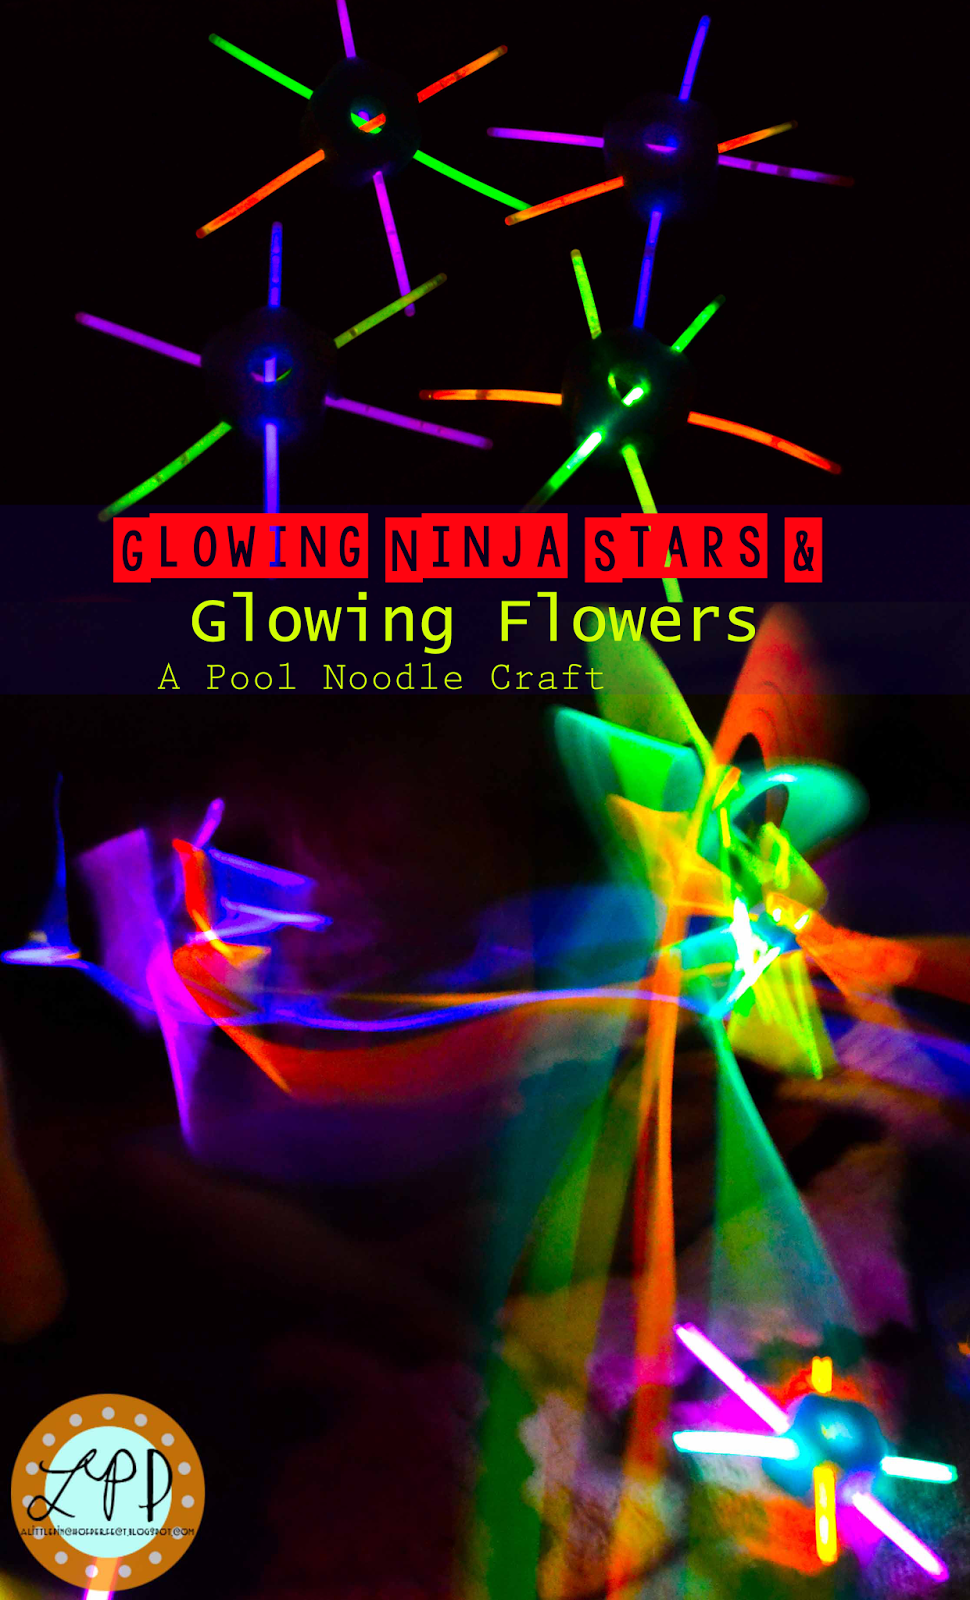 Pool Noodle Glowing Ninja Stars and Flowers